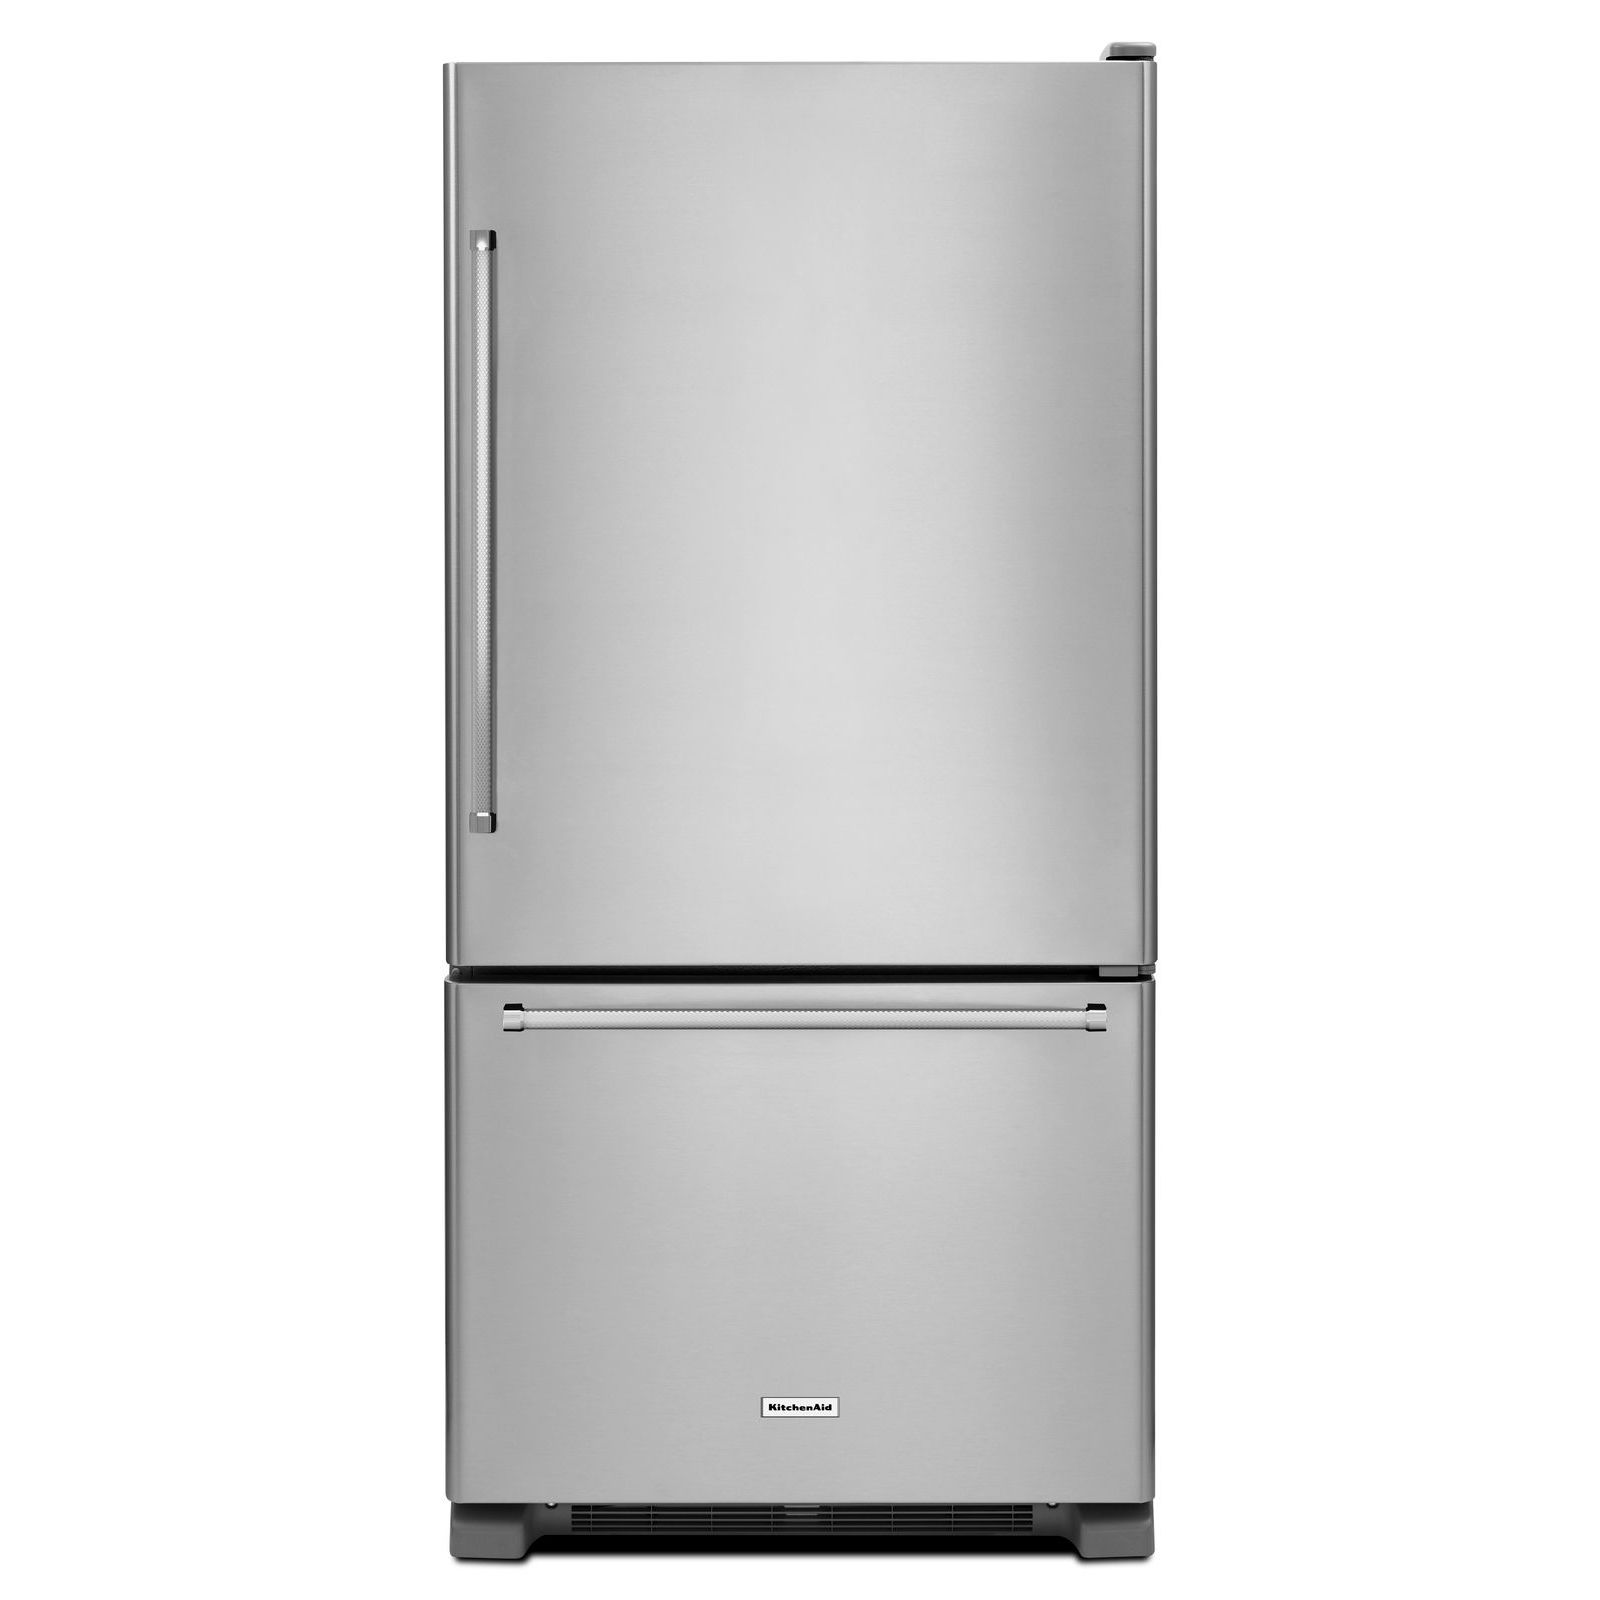 KitchenAid KRBR102ESS 22 cu. ft. Bottom Mount Refrigerator - Stainless Steel